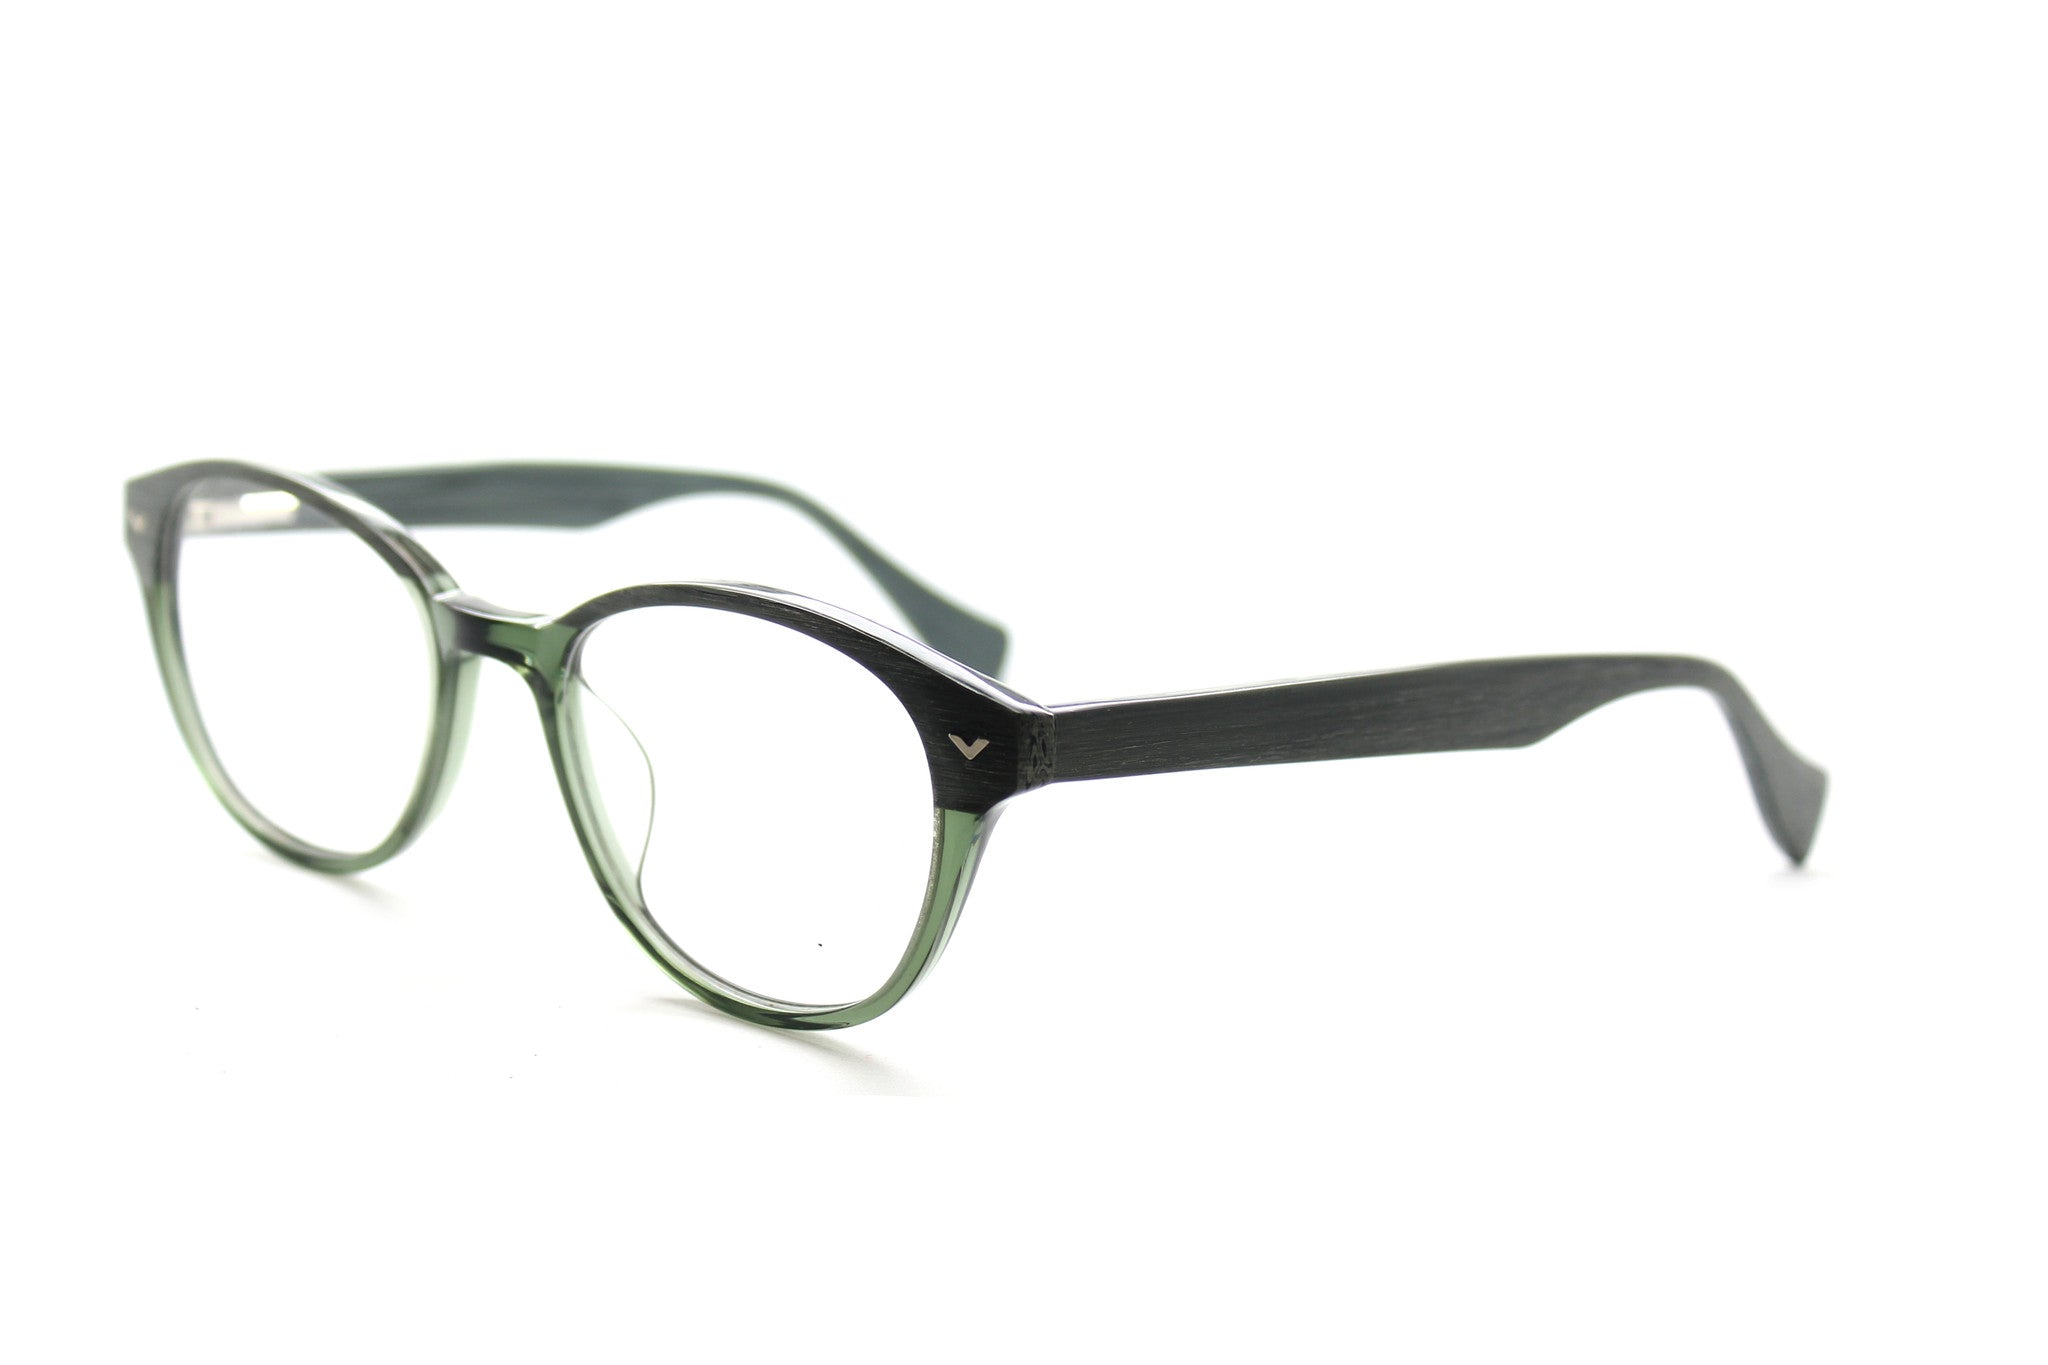 03c4615bb812 ... Beautiful acetate glasses frames by Mr Foureyes in green tones (Corey  style)